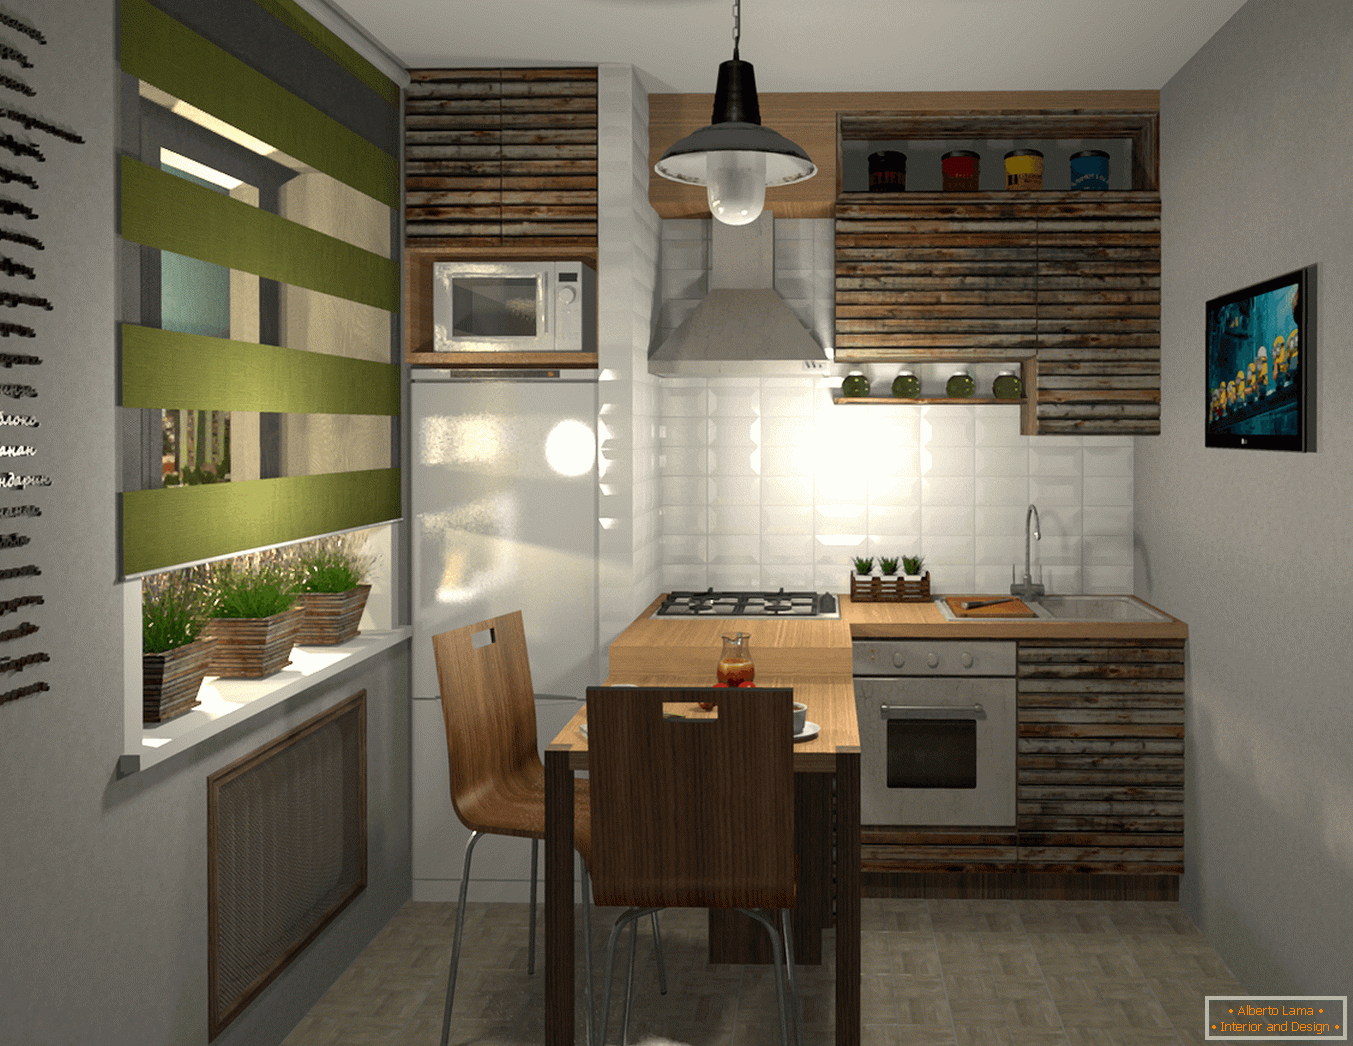 malogabaritnye-kitchen-design-2016